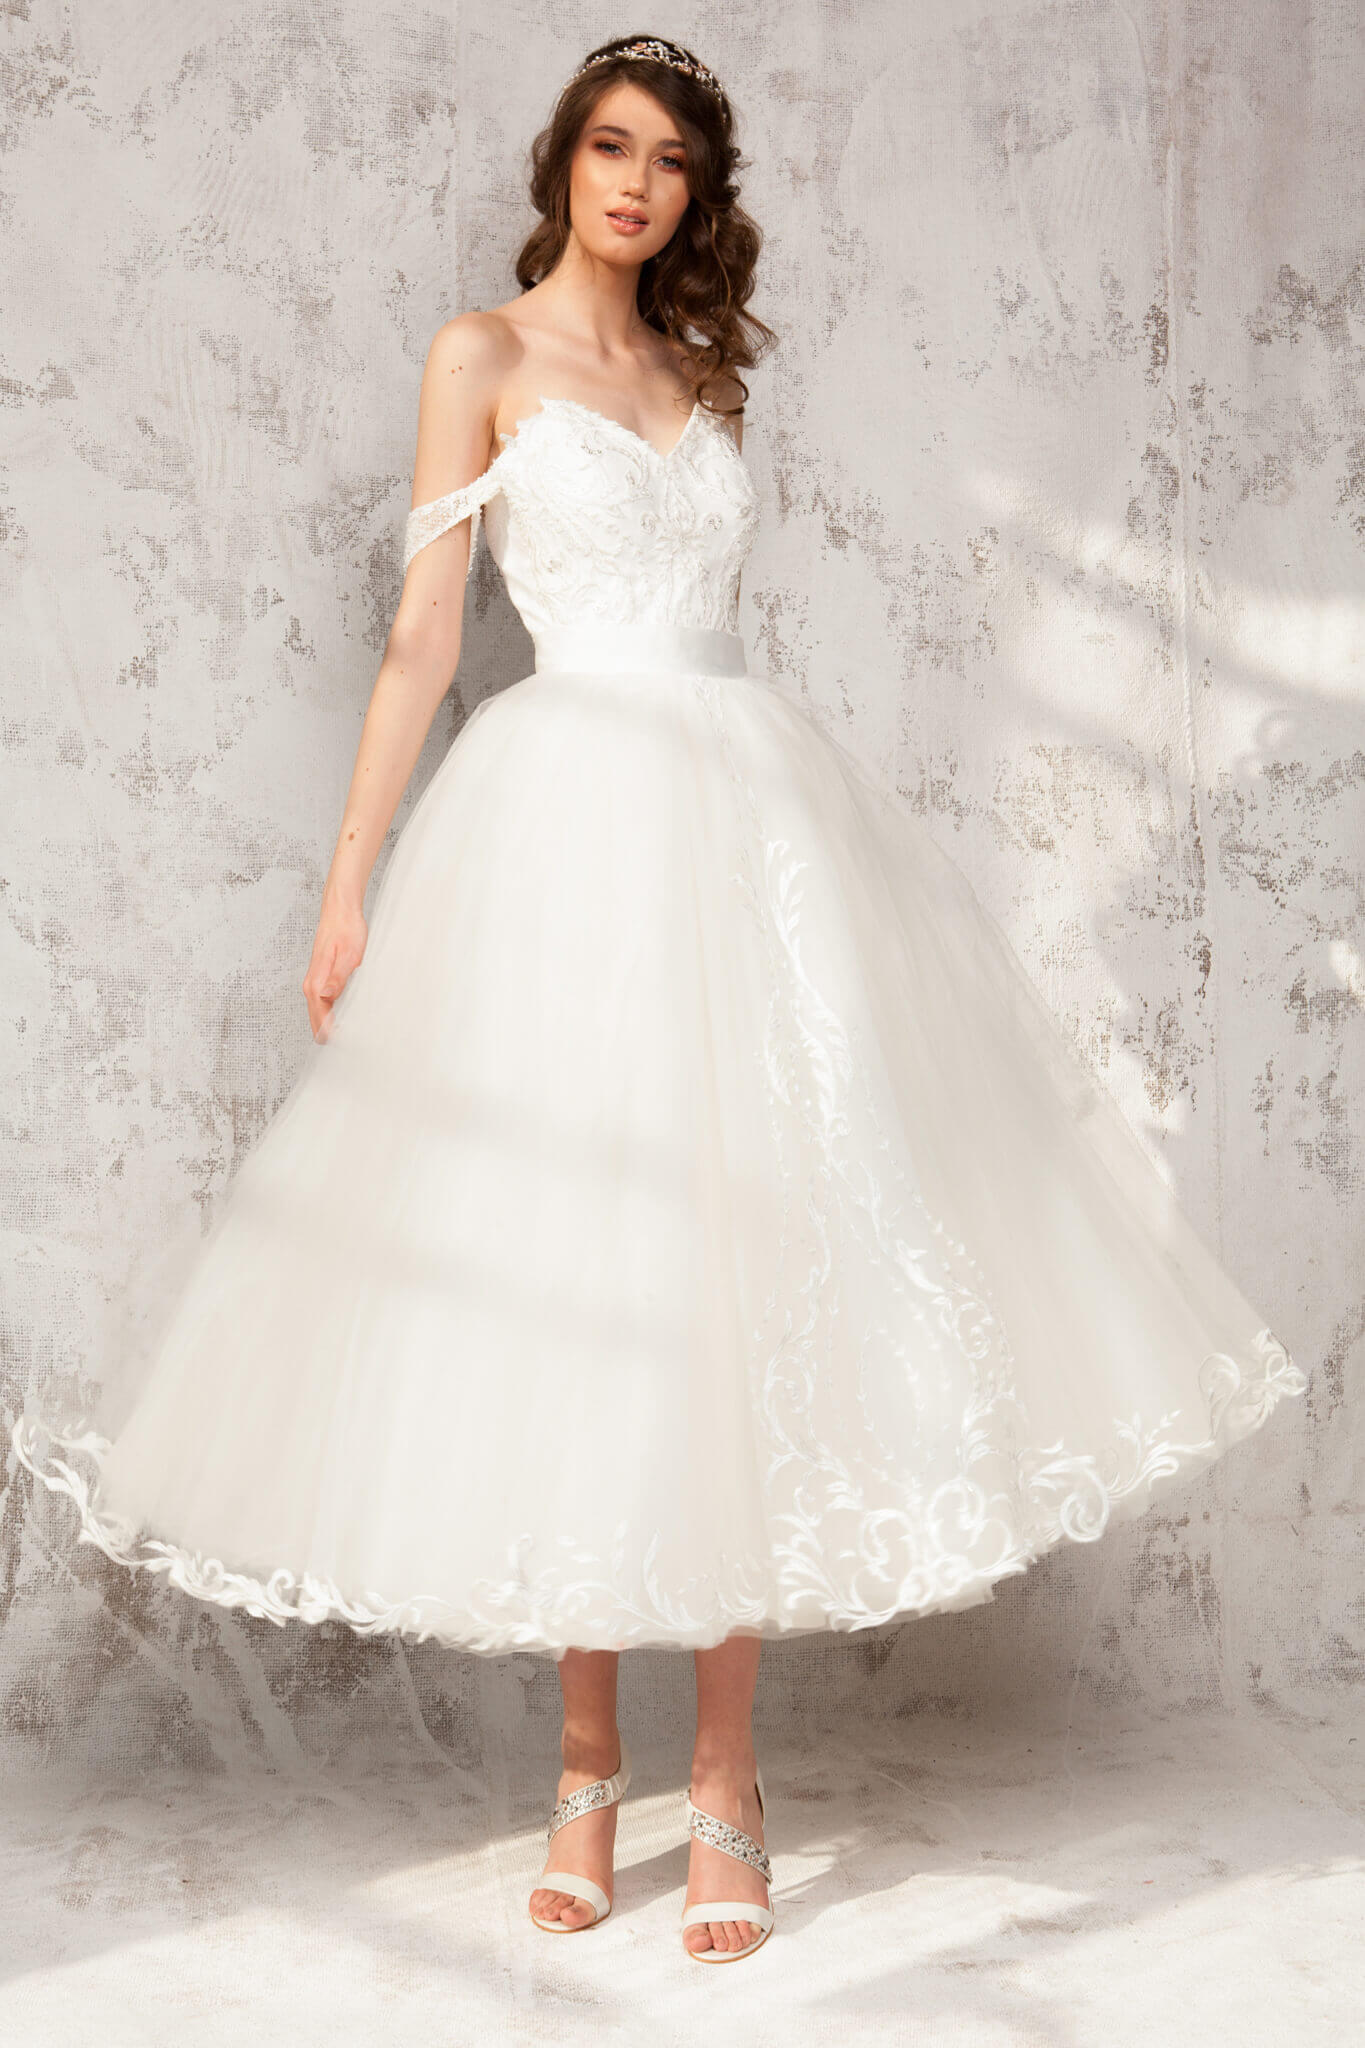 Tafetta Dress With Chantilly Lace And Embroidery Beads Skirt ¾ Of